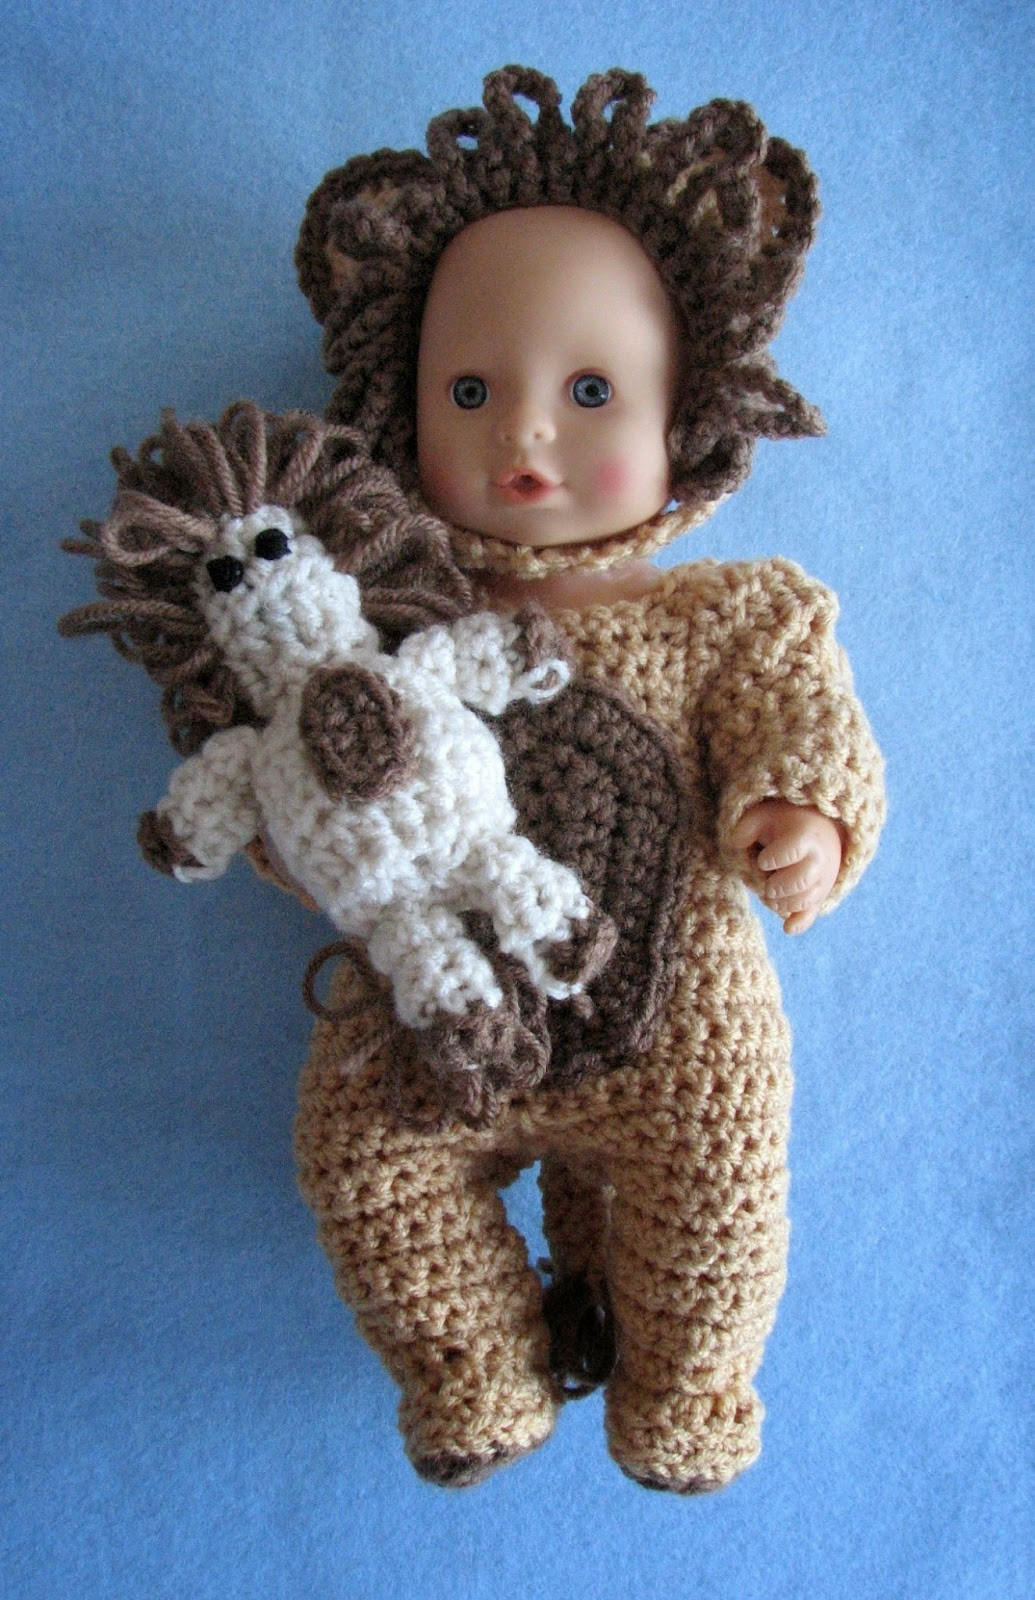 Free Crochet Doll Patterns Lovely Donna S Crochet Designs Blog Of Free Patterns Free Of Great 49 Ideas Free Crochet Doll Patterns